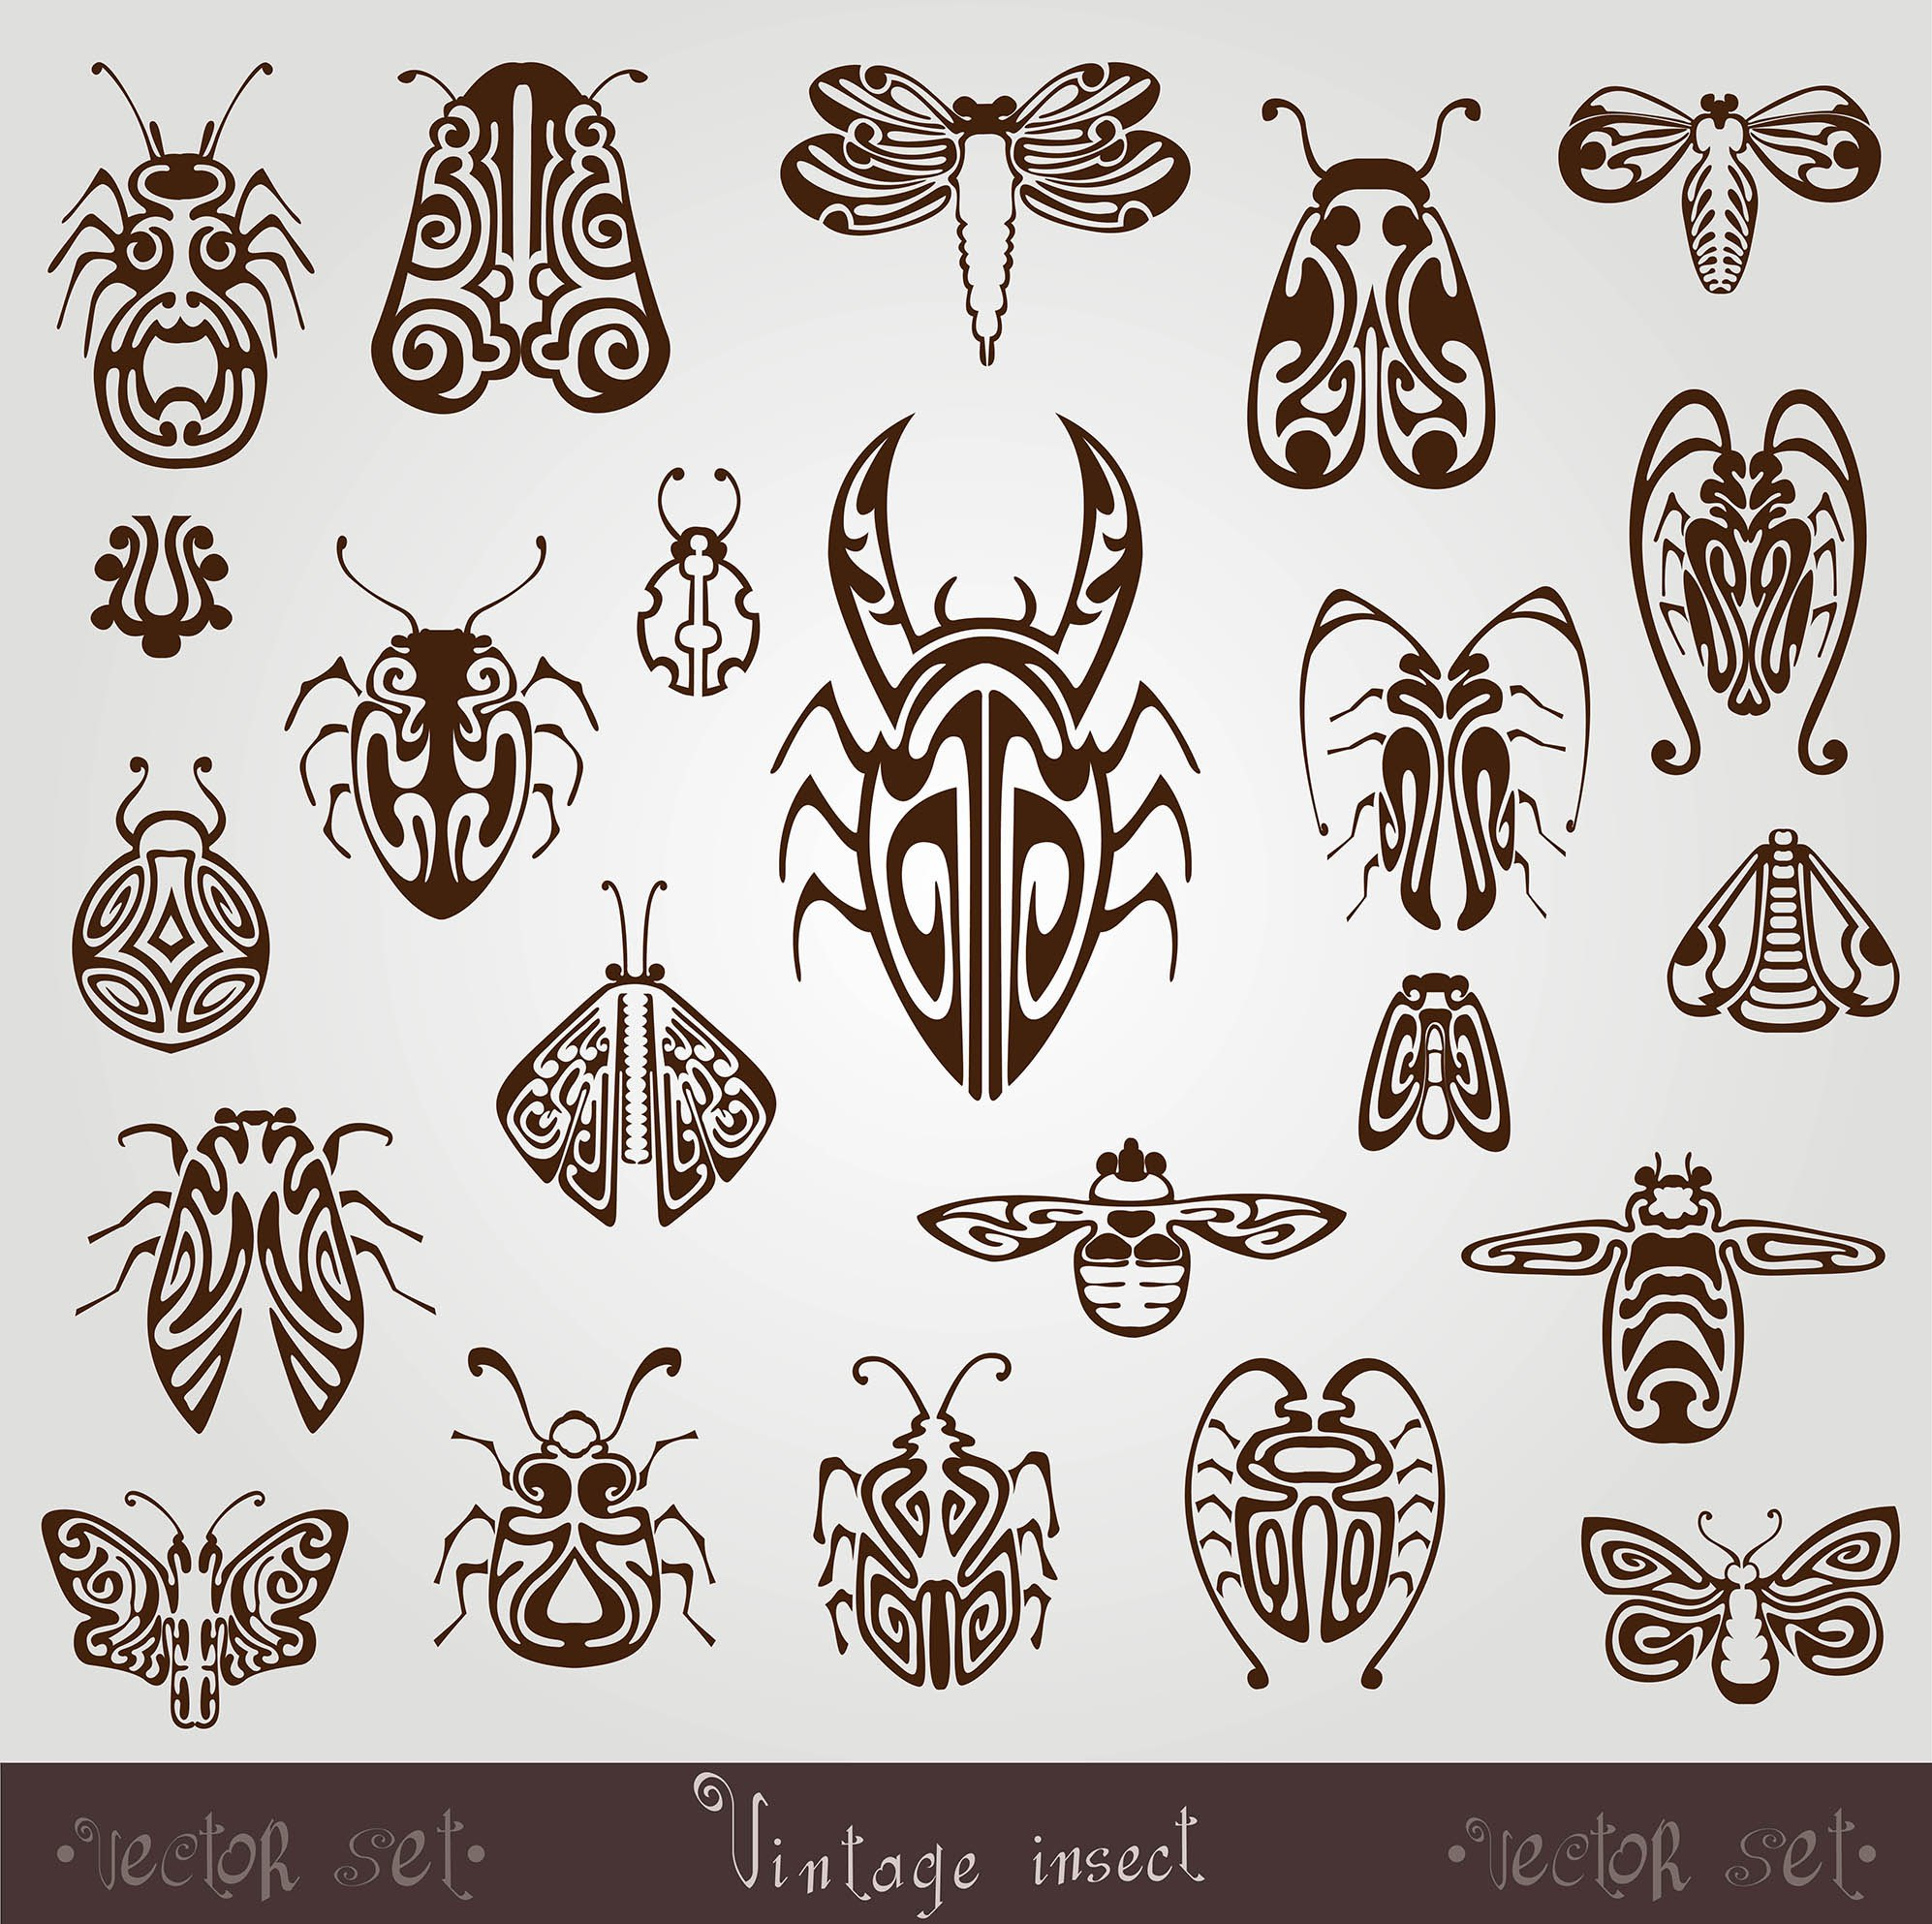 Vintage Insect Silhouette Set Free Vector